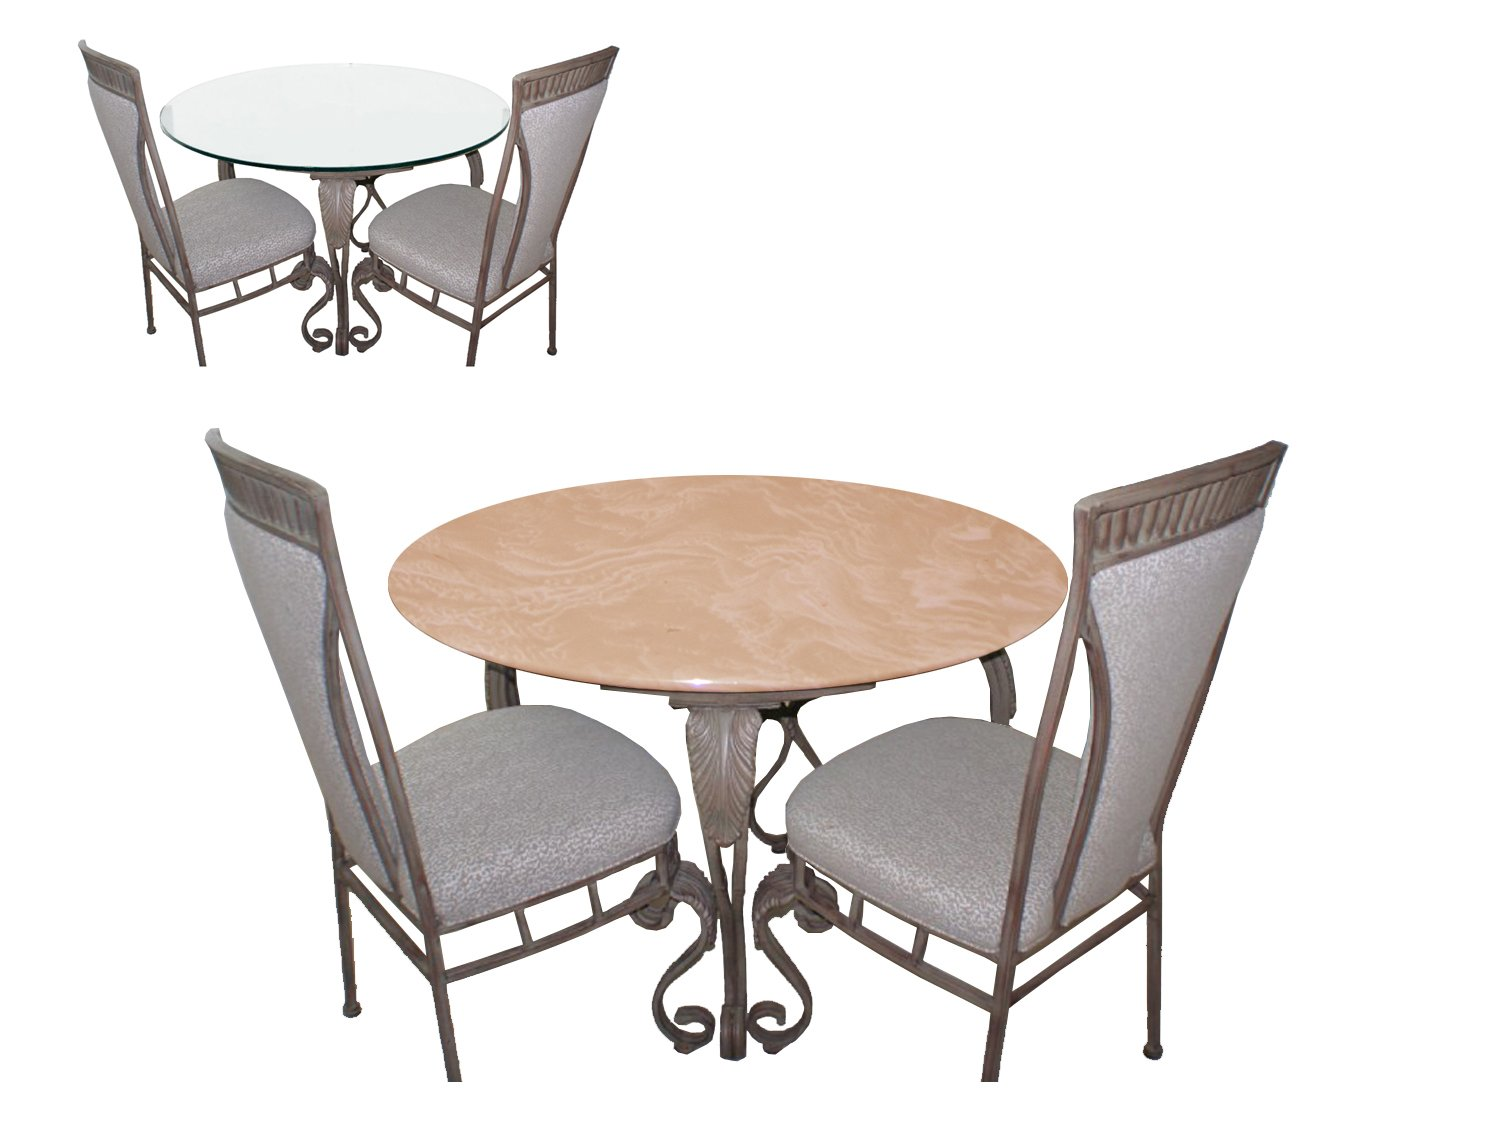 Fitted Table Cover for Glass Tables up to 48 Dia. Color Mocha for All Round Tables, Dining Tables, Patio Tables, Indoor Outdoor